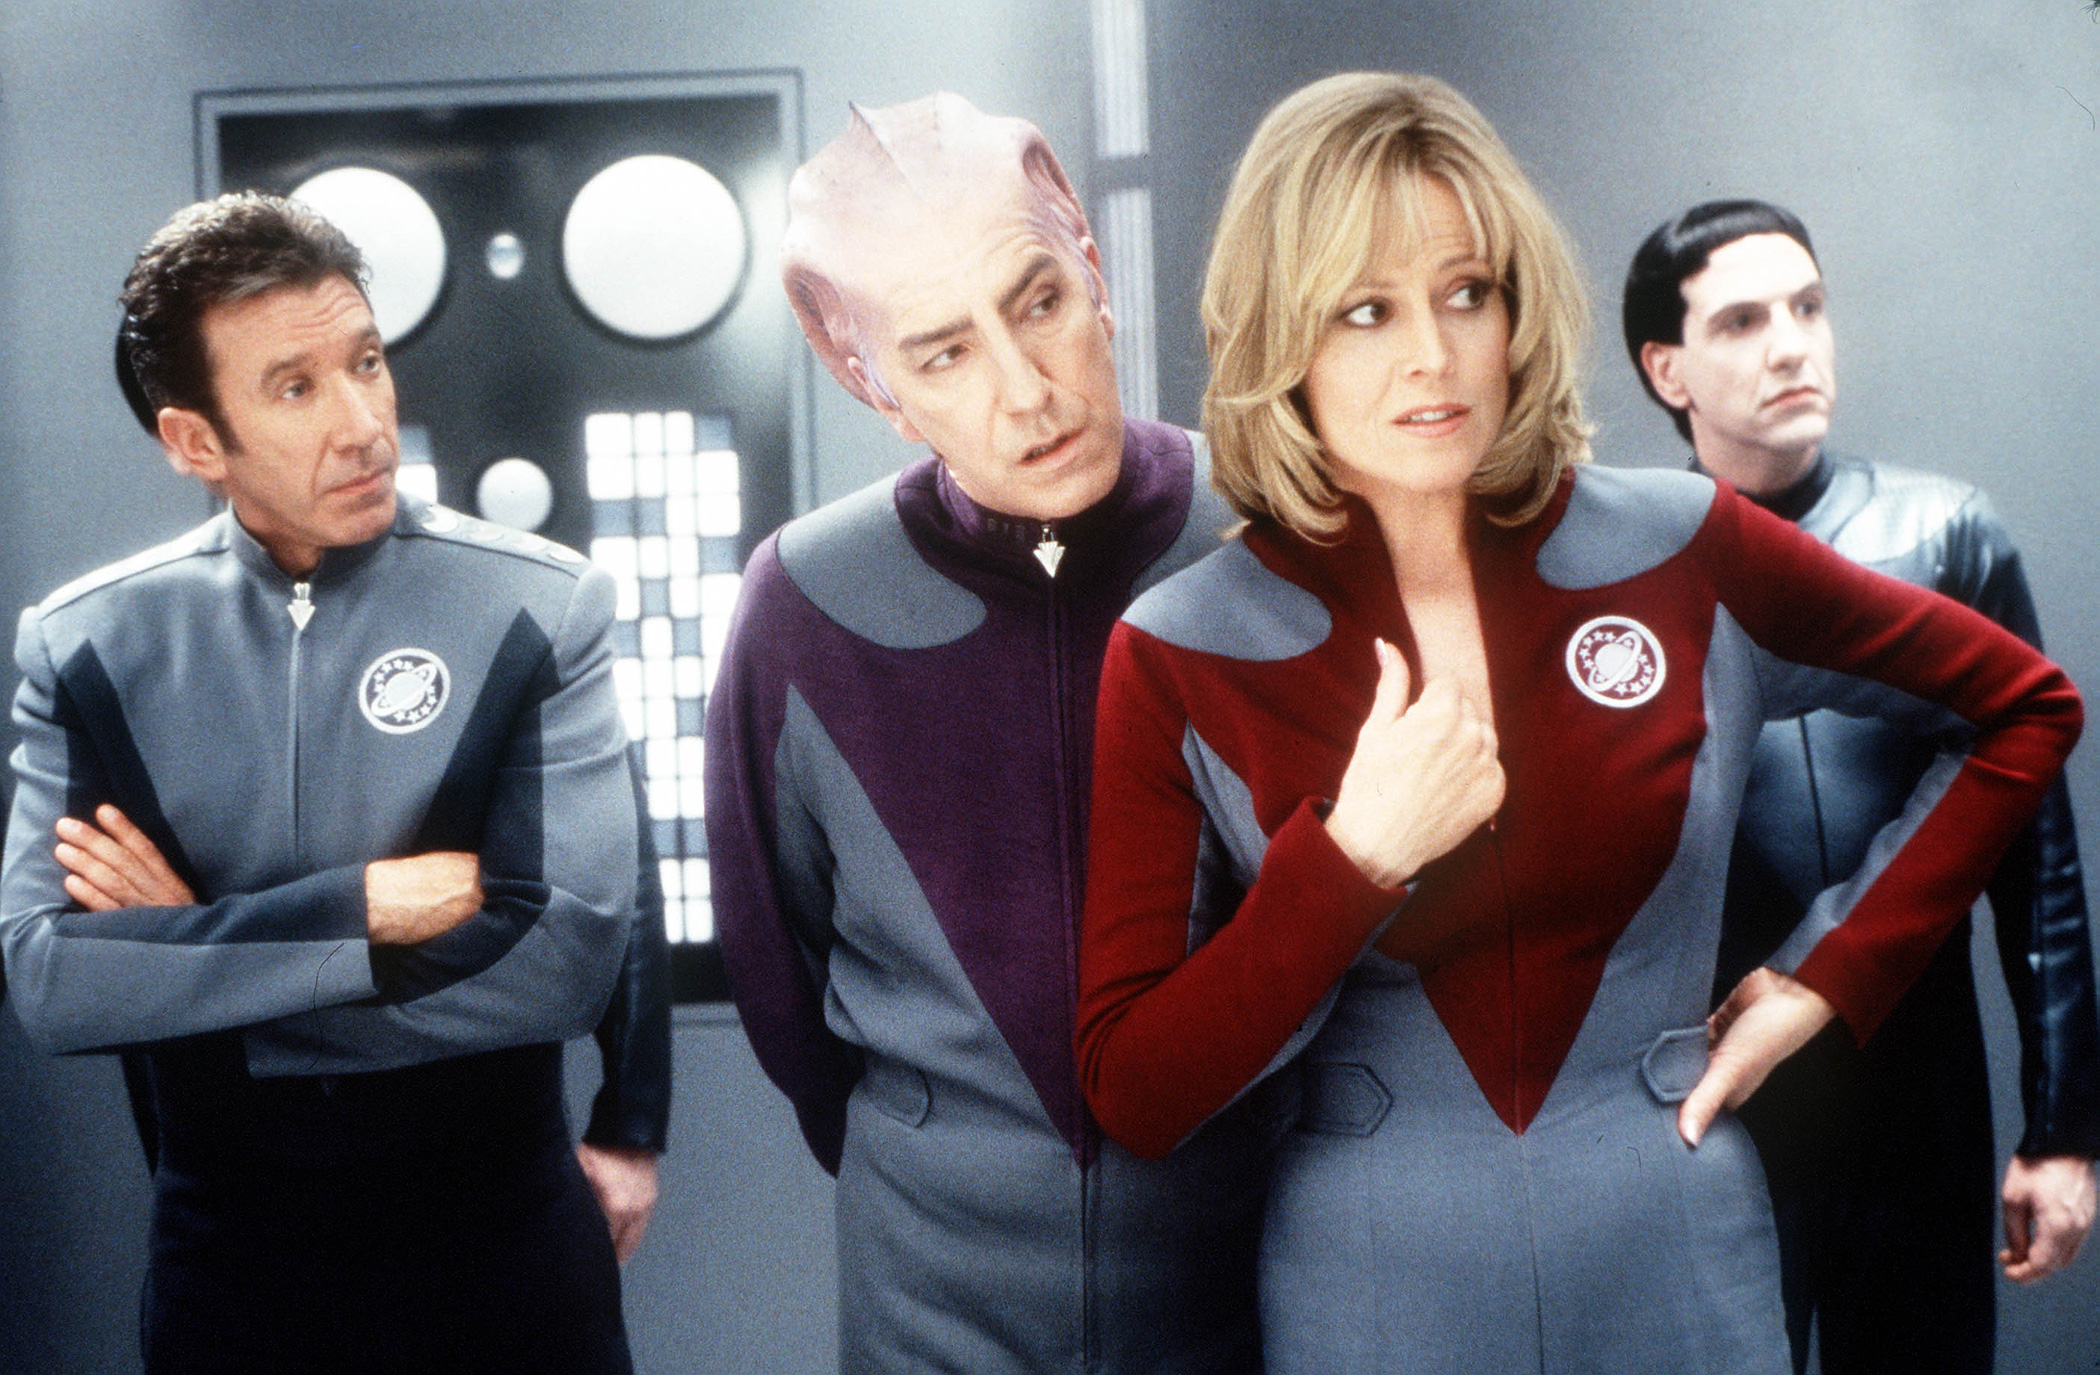 In 1999's meta comedy  Galaxy Quest, Weaver played actress Gwen DeMarco, who in turn played the not-so-bright Lt. Tawny Madison.